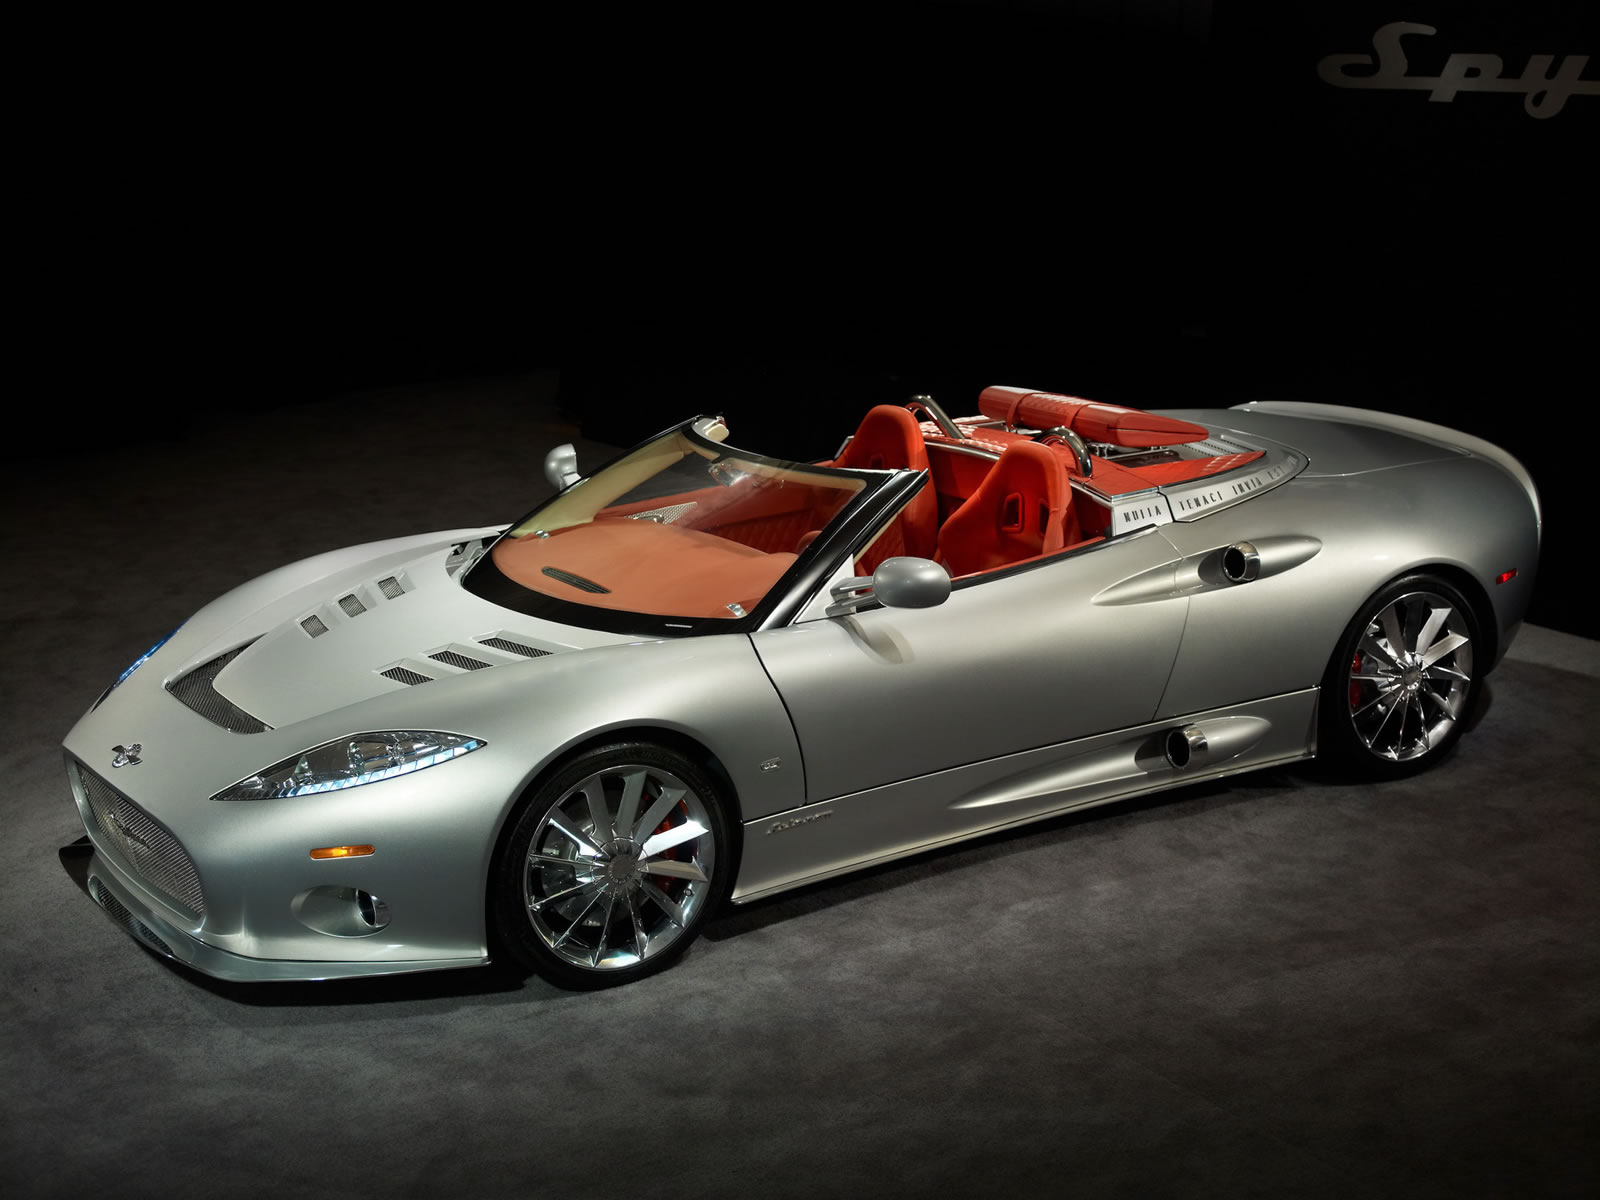 Spyker c8 photo - 4